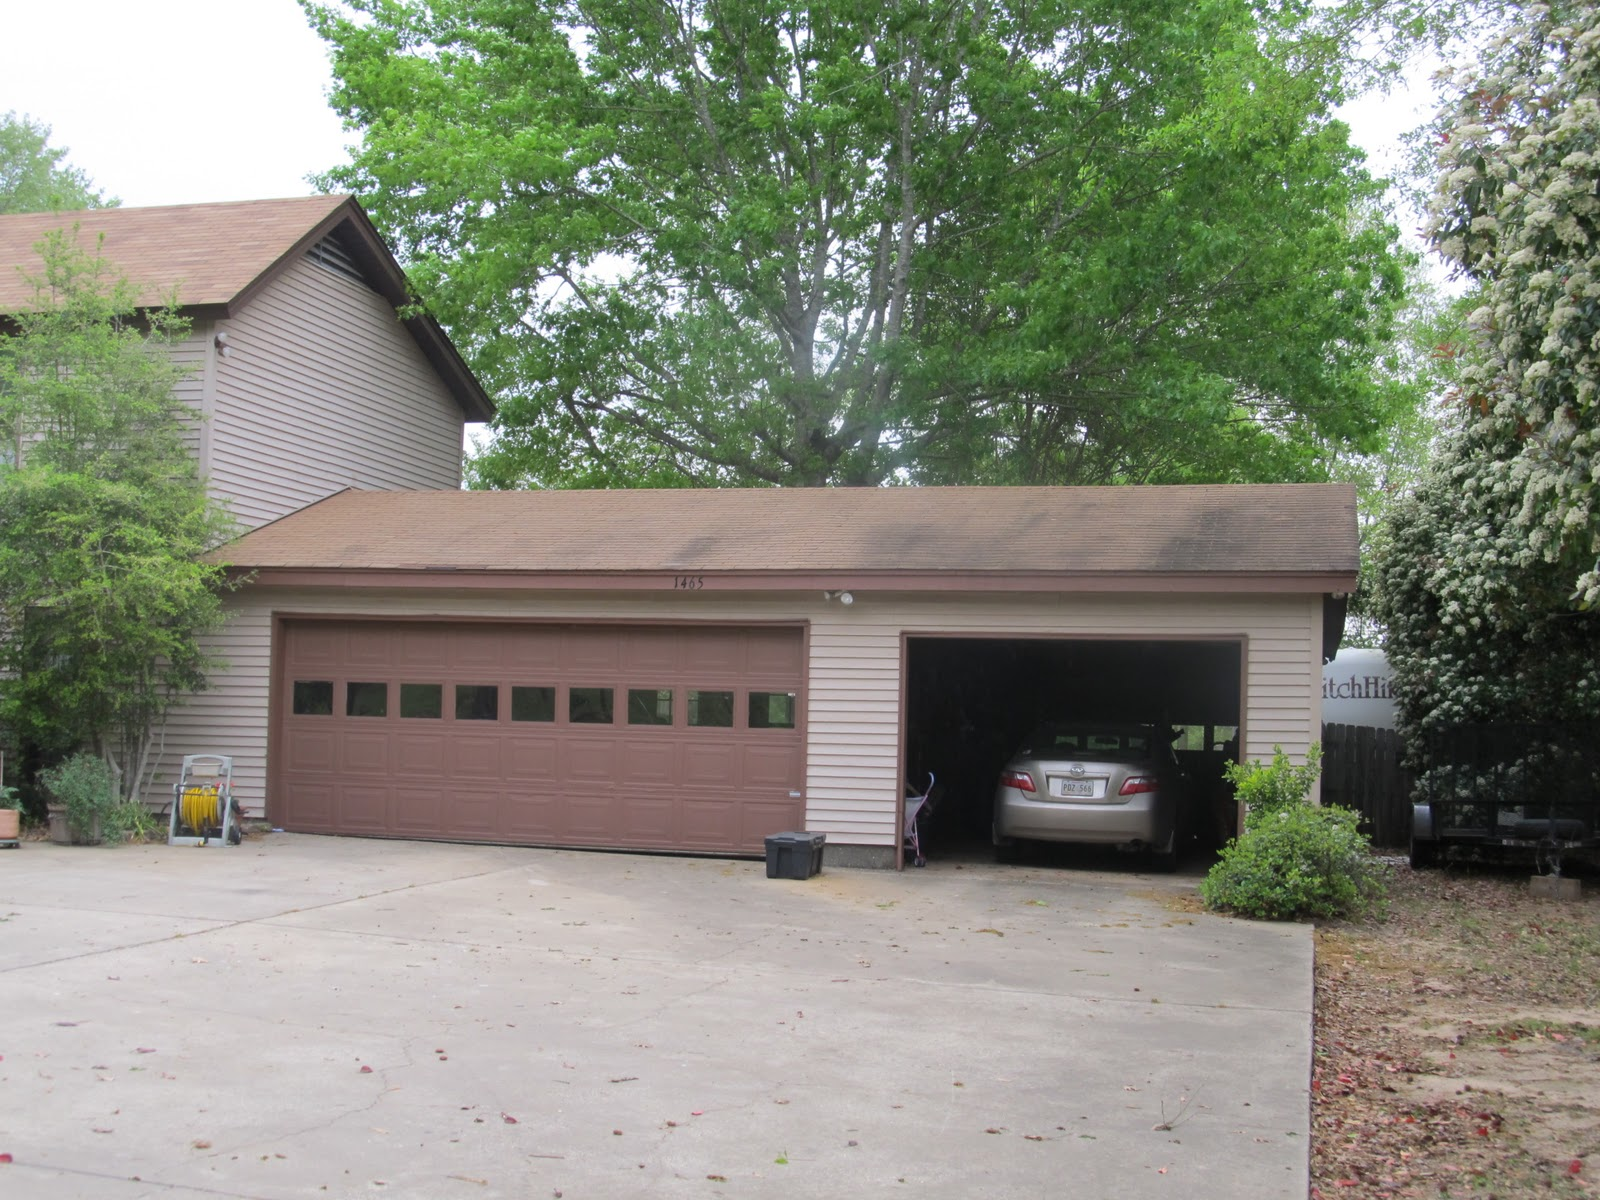 Next Is A Picture Of Their Garage. There Is No Greater Love Than That Of A  Son In Law Who Gives His Parking Place In The Garage To His Father In Law!